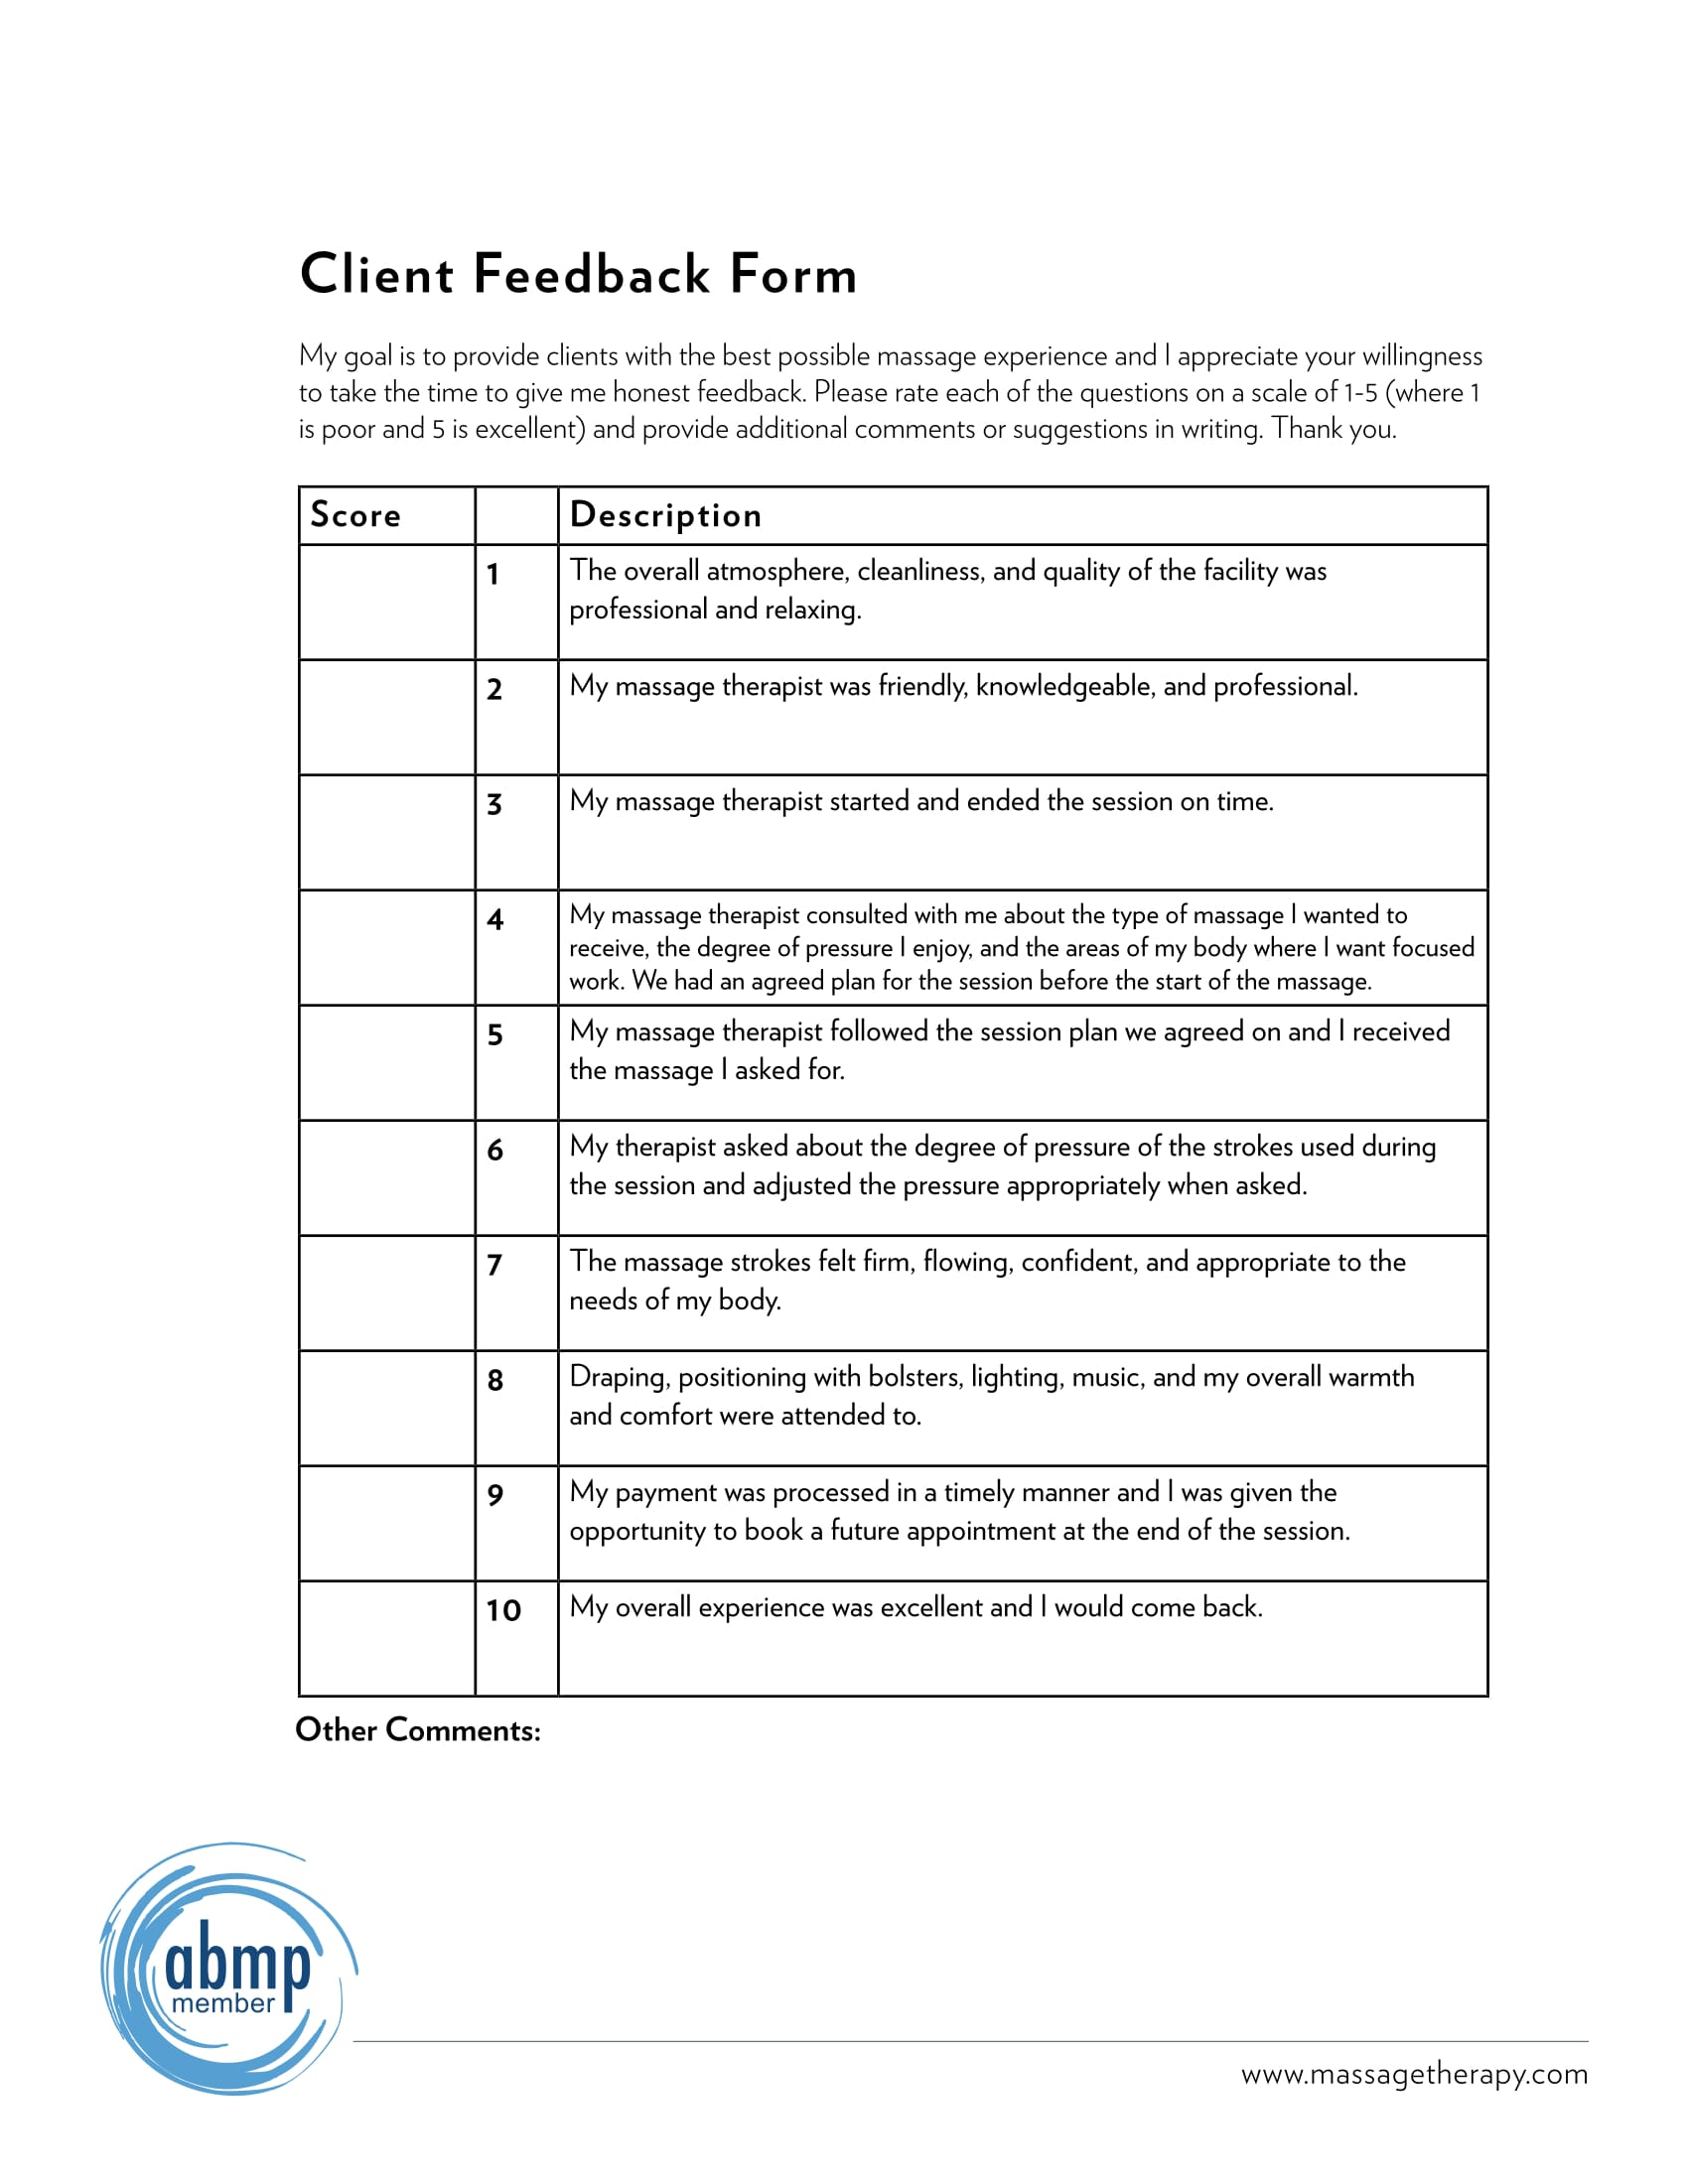 Client Feedback Form Pdf 1